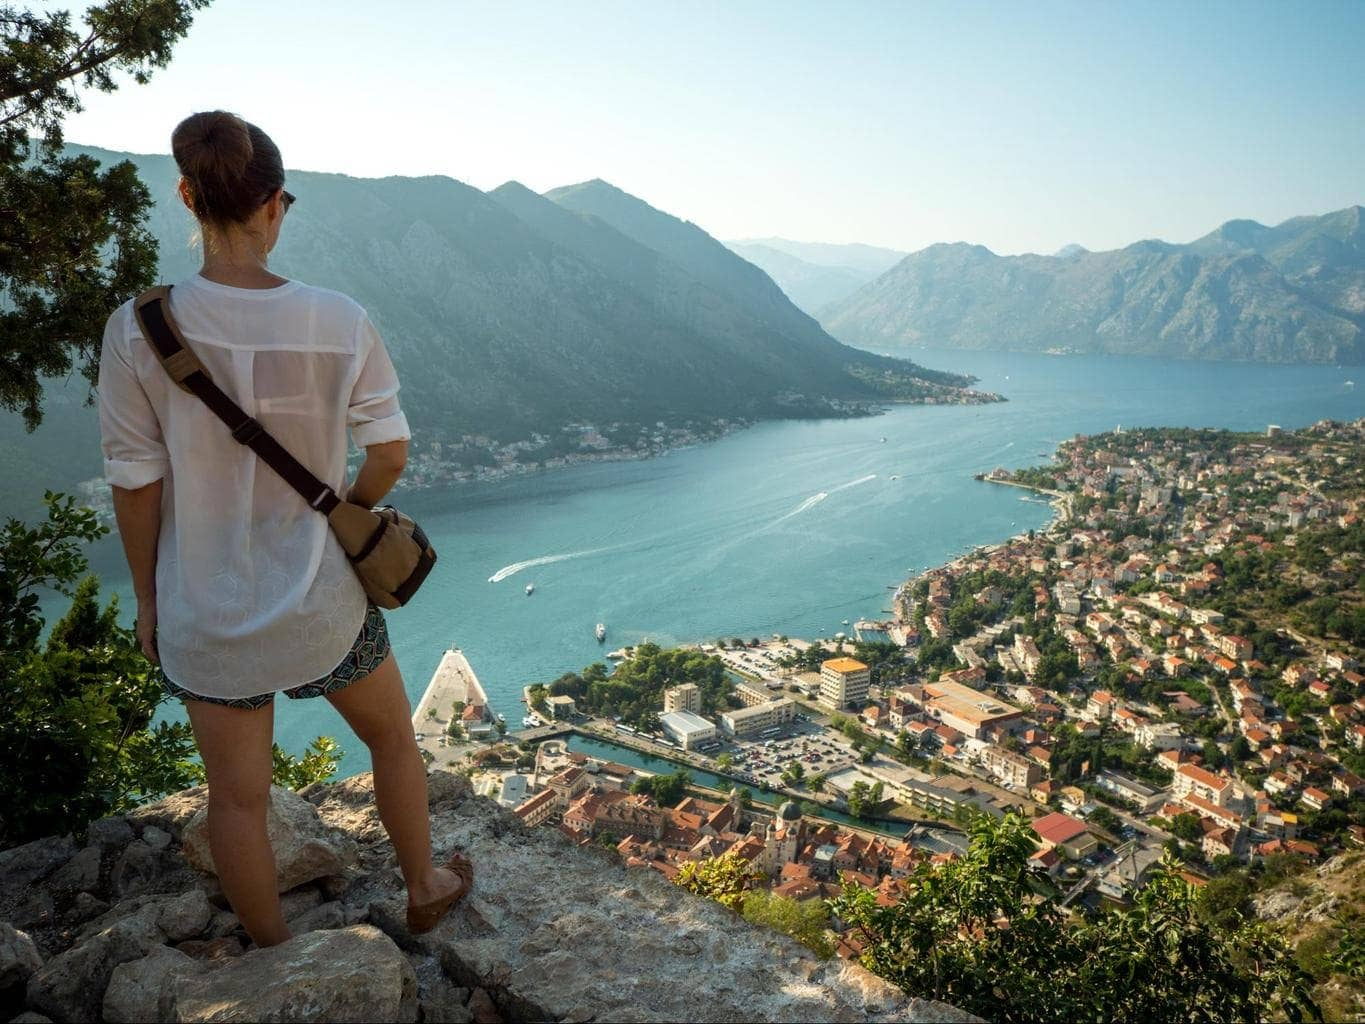 The view on the way up to Kotor fortress